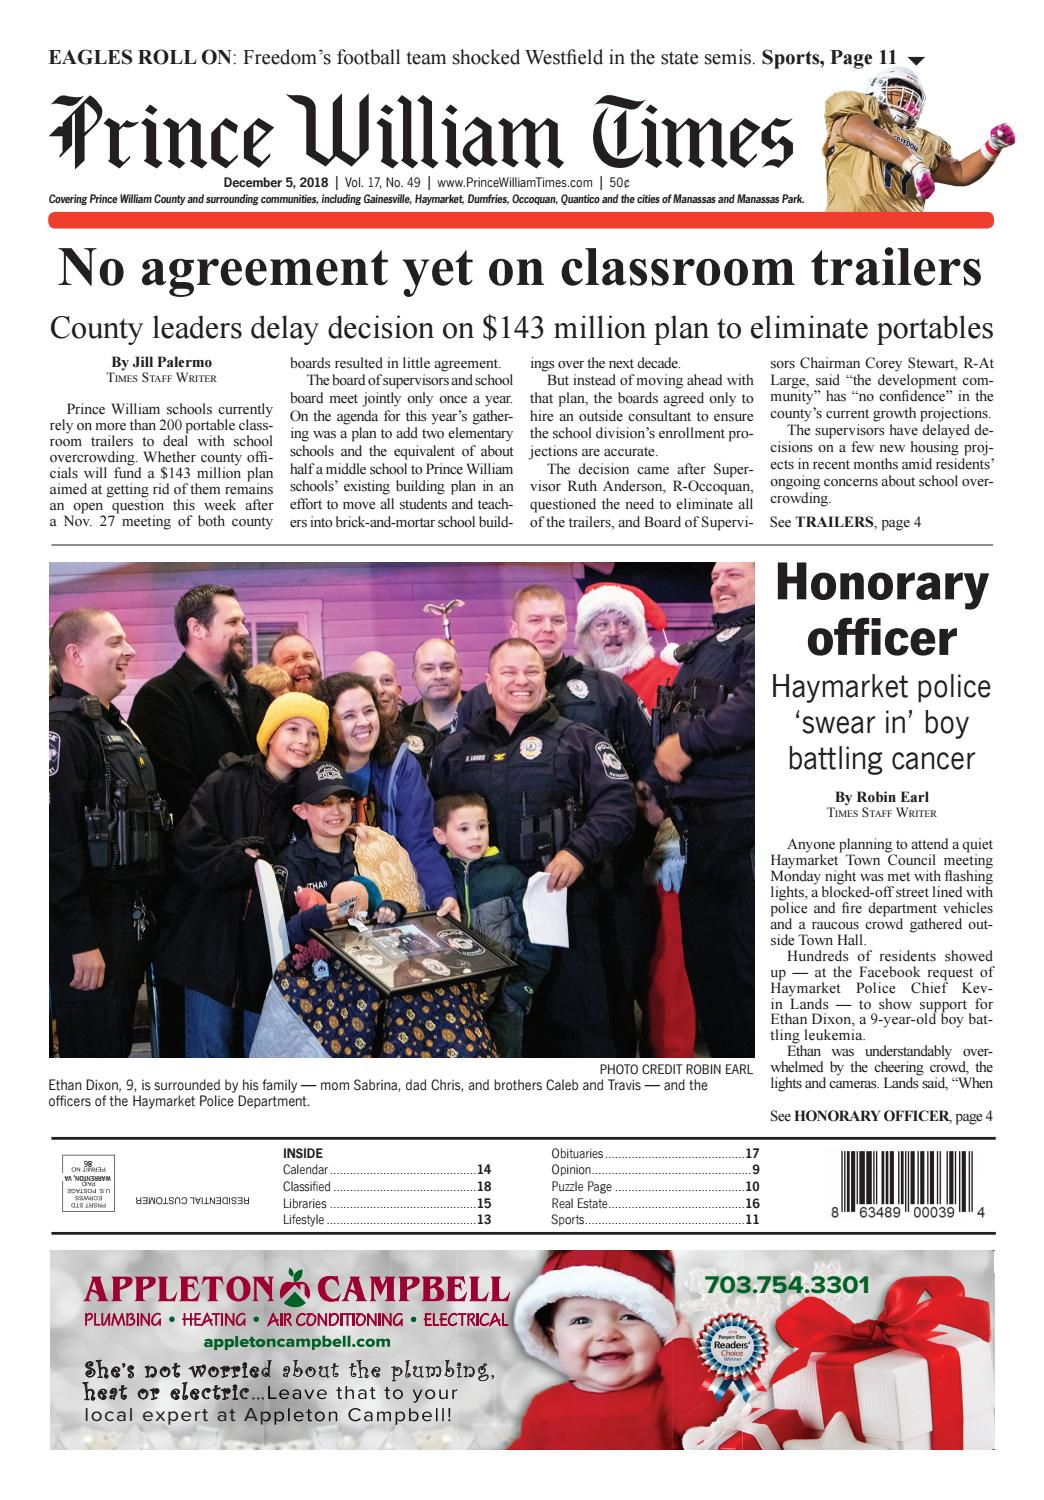 prince william times december 5 2018 by fauquier times issuu prince william times december 5 2018